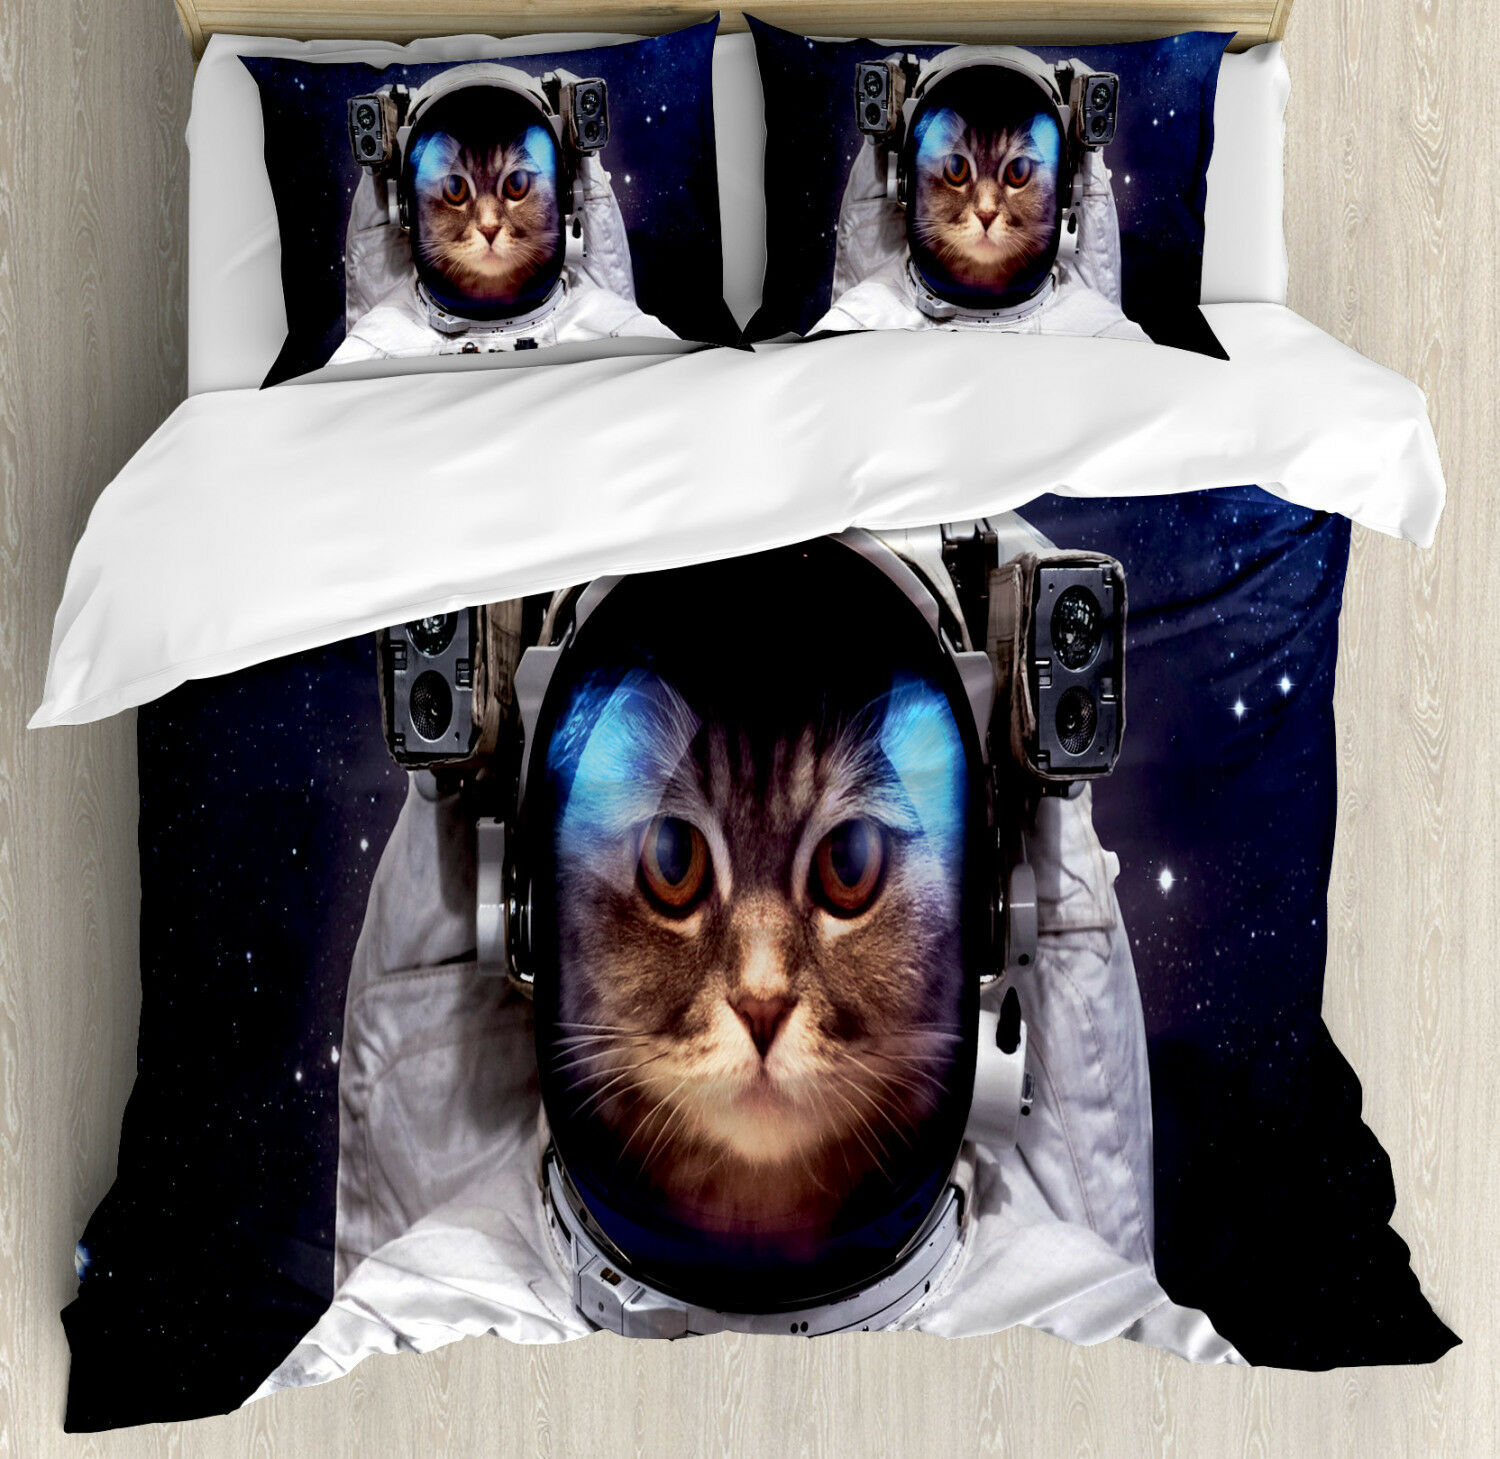 Space Cat Duvet Cover Set with Pillow Shams Kitty Suit in Cosmos Print